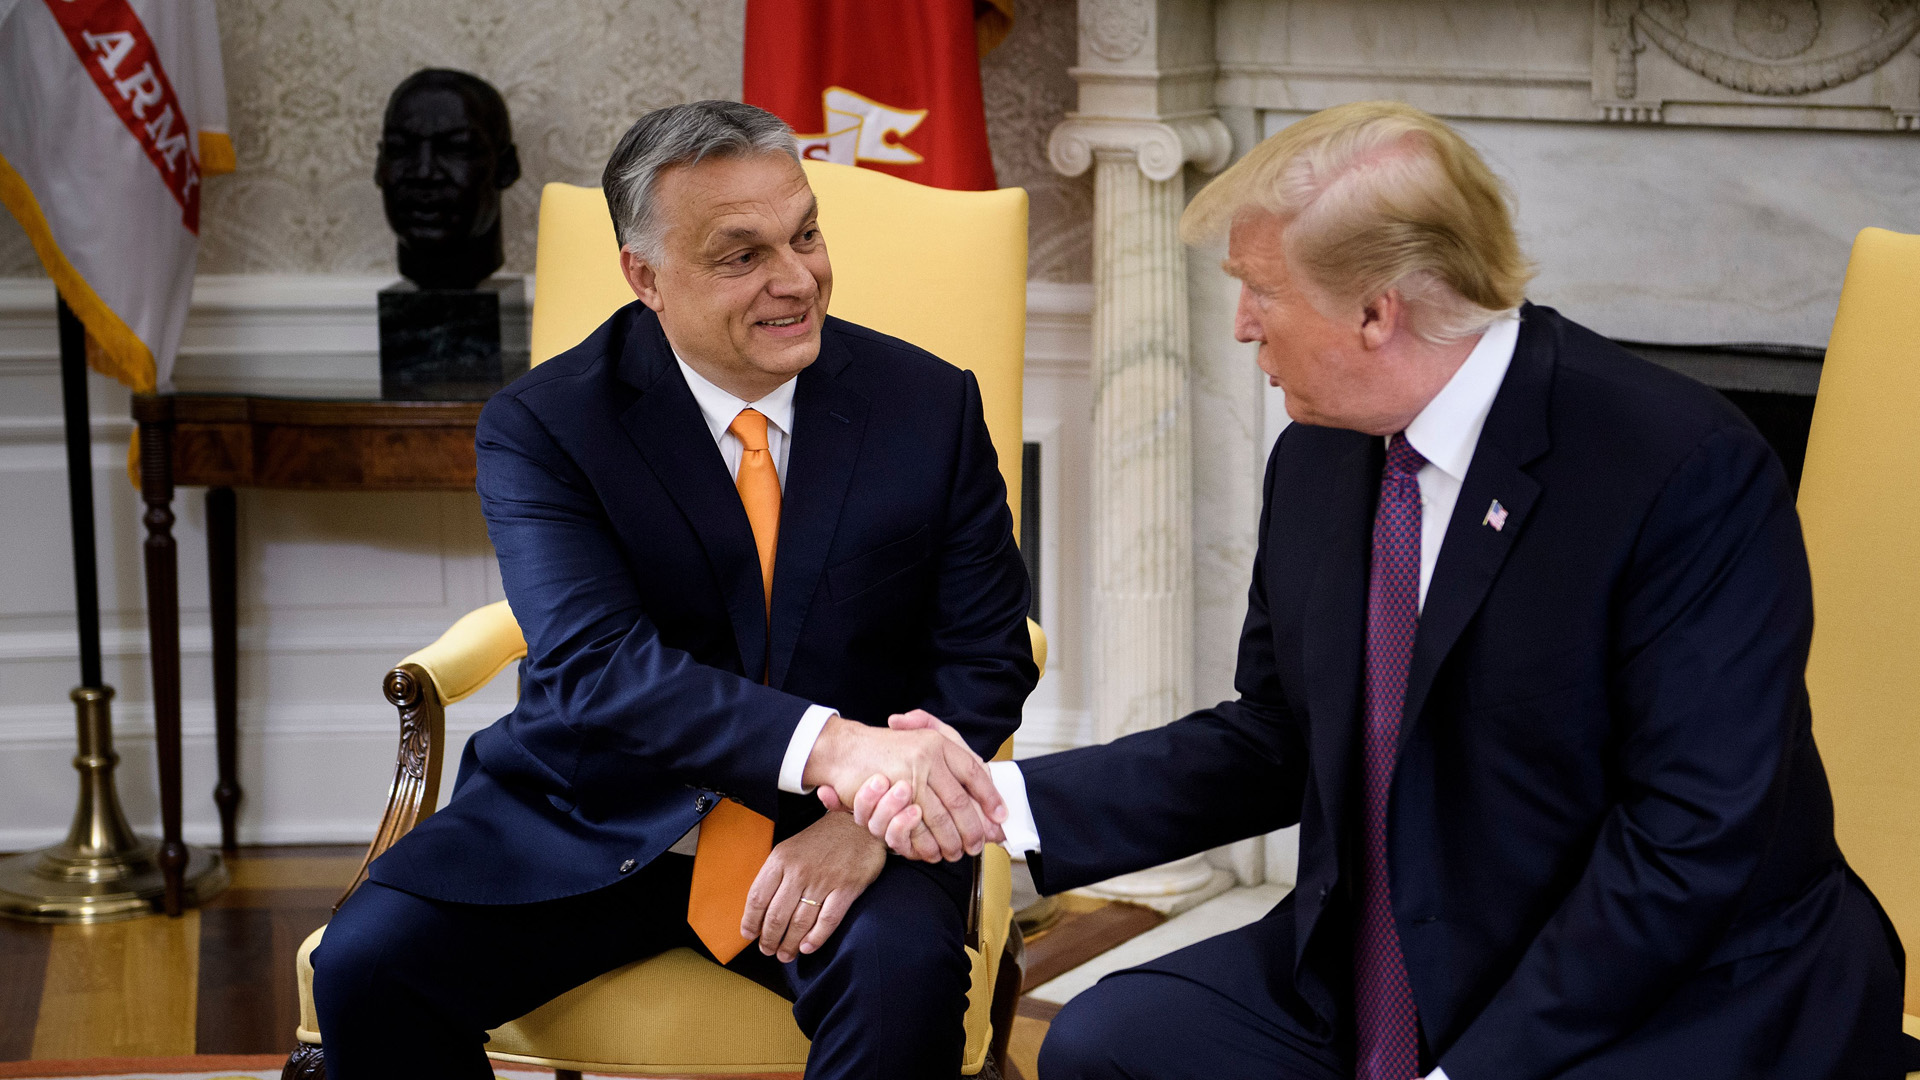 Hungary's Prime Minister Viktor Orban and President Donald Trump shake hands before a meeting in the Oval Office of the White House May 13, 2019, in Washington, DC. (Credit: BRENDAN SMIALOWSKI/AFP/Getty Images)